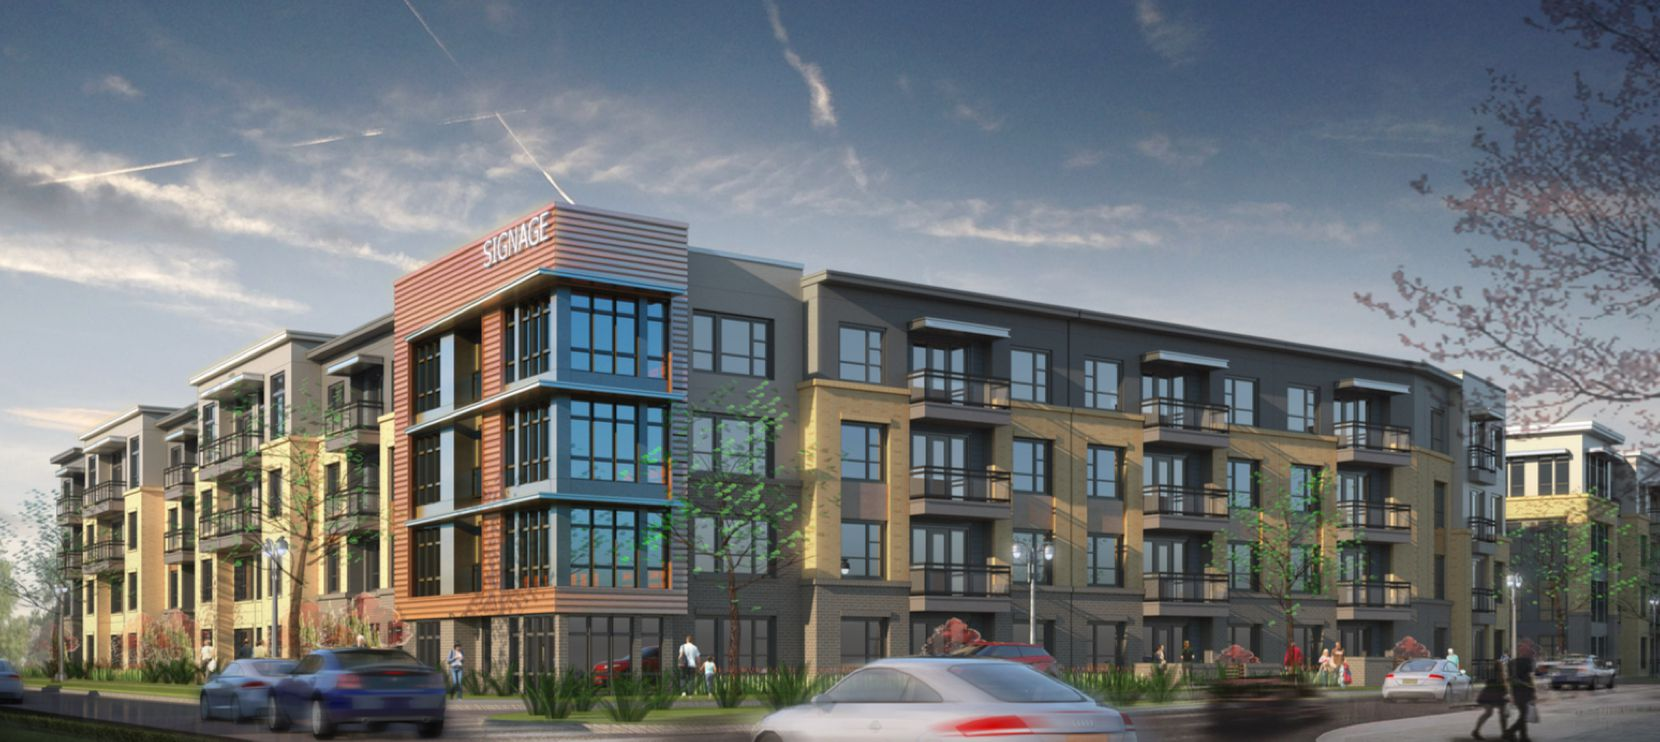 The Allen City Center project would be built at U.S. Highway 75 and Main Street.